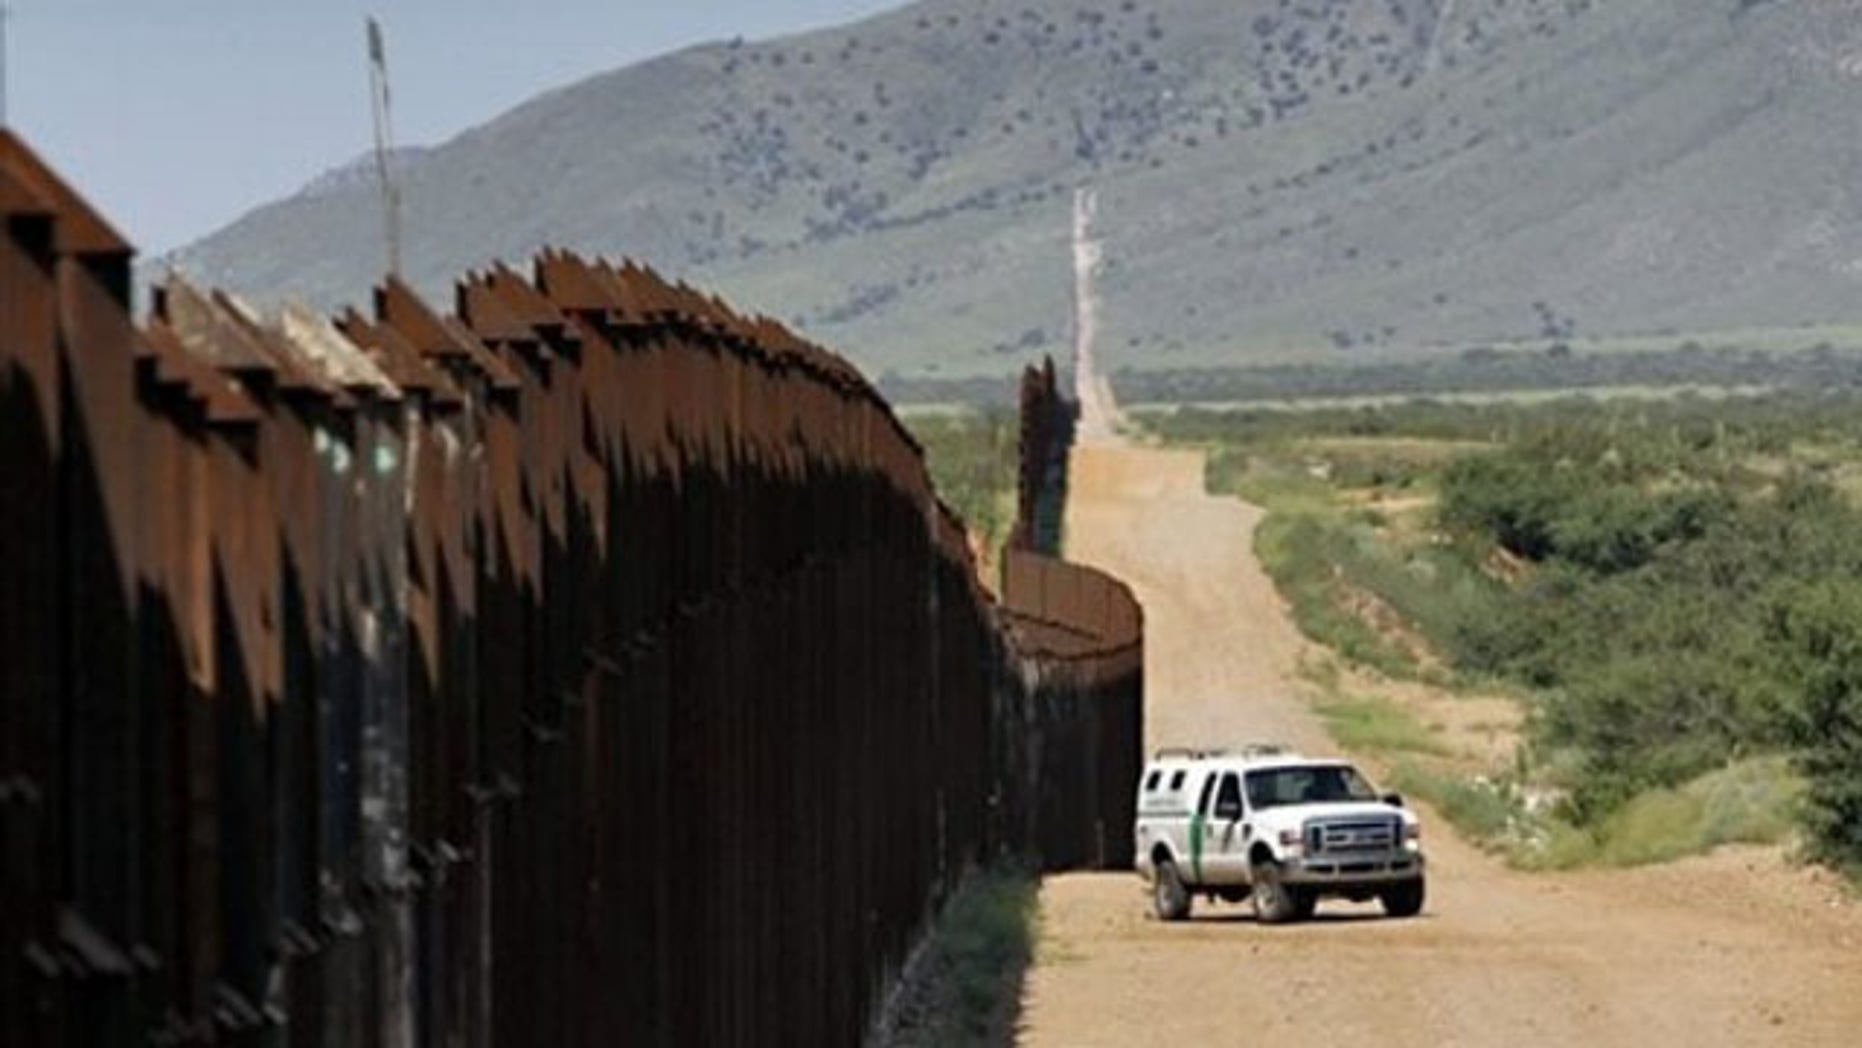 A U.S. Customs and Border Patrol agent patrols along the Arizona-Mexico border Aug. 15 in Hereford, Ariz. (AP Photo)